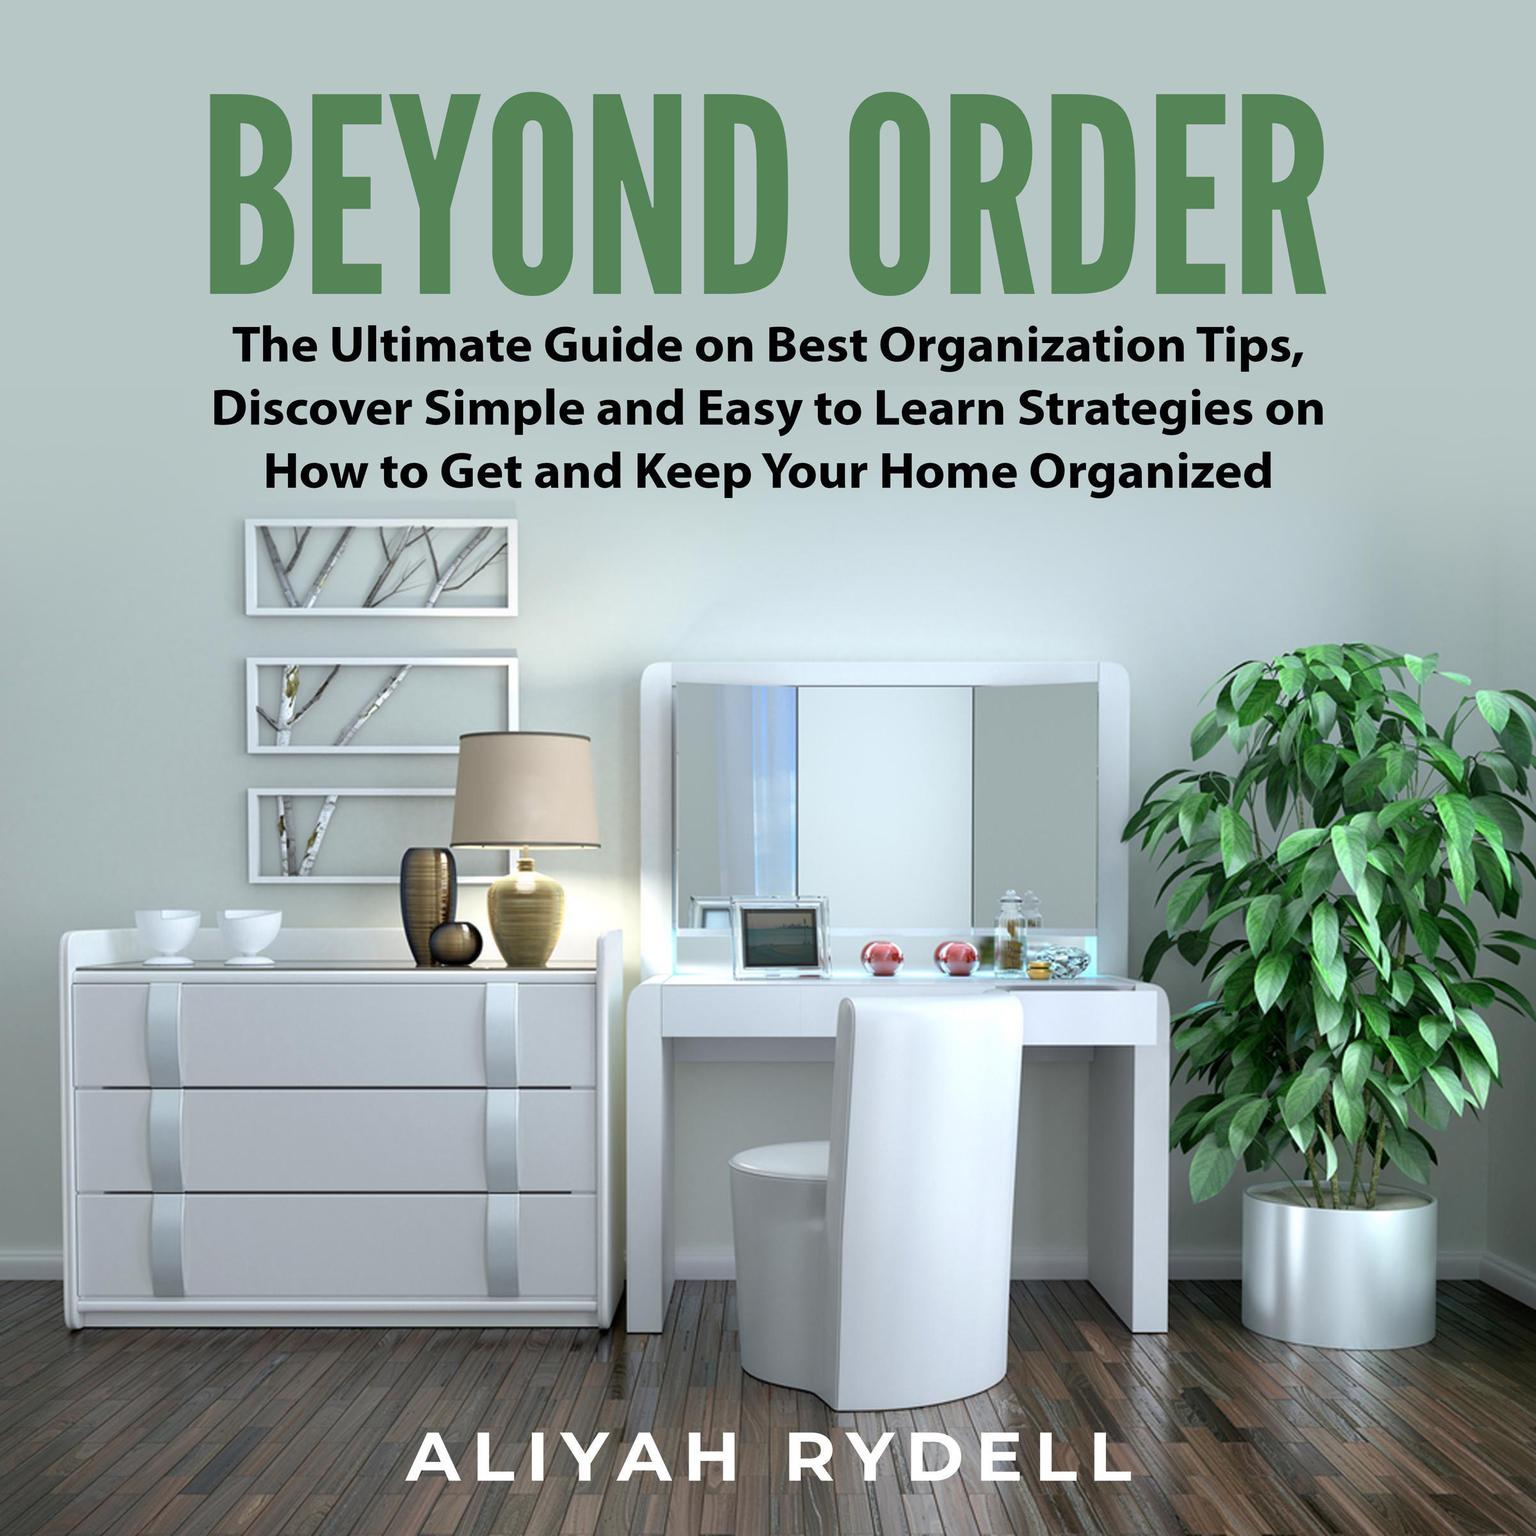 Beyond Order:: The Ultimate Guide on Best Organization Tips, Discover Simple and Easy to Learn Strategies on How to Get and Keep Your Home Organized  Audiobook, by Aliyah Rydell